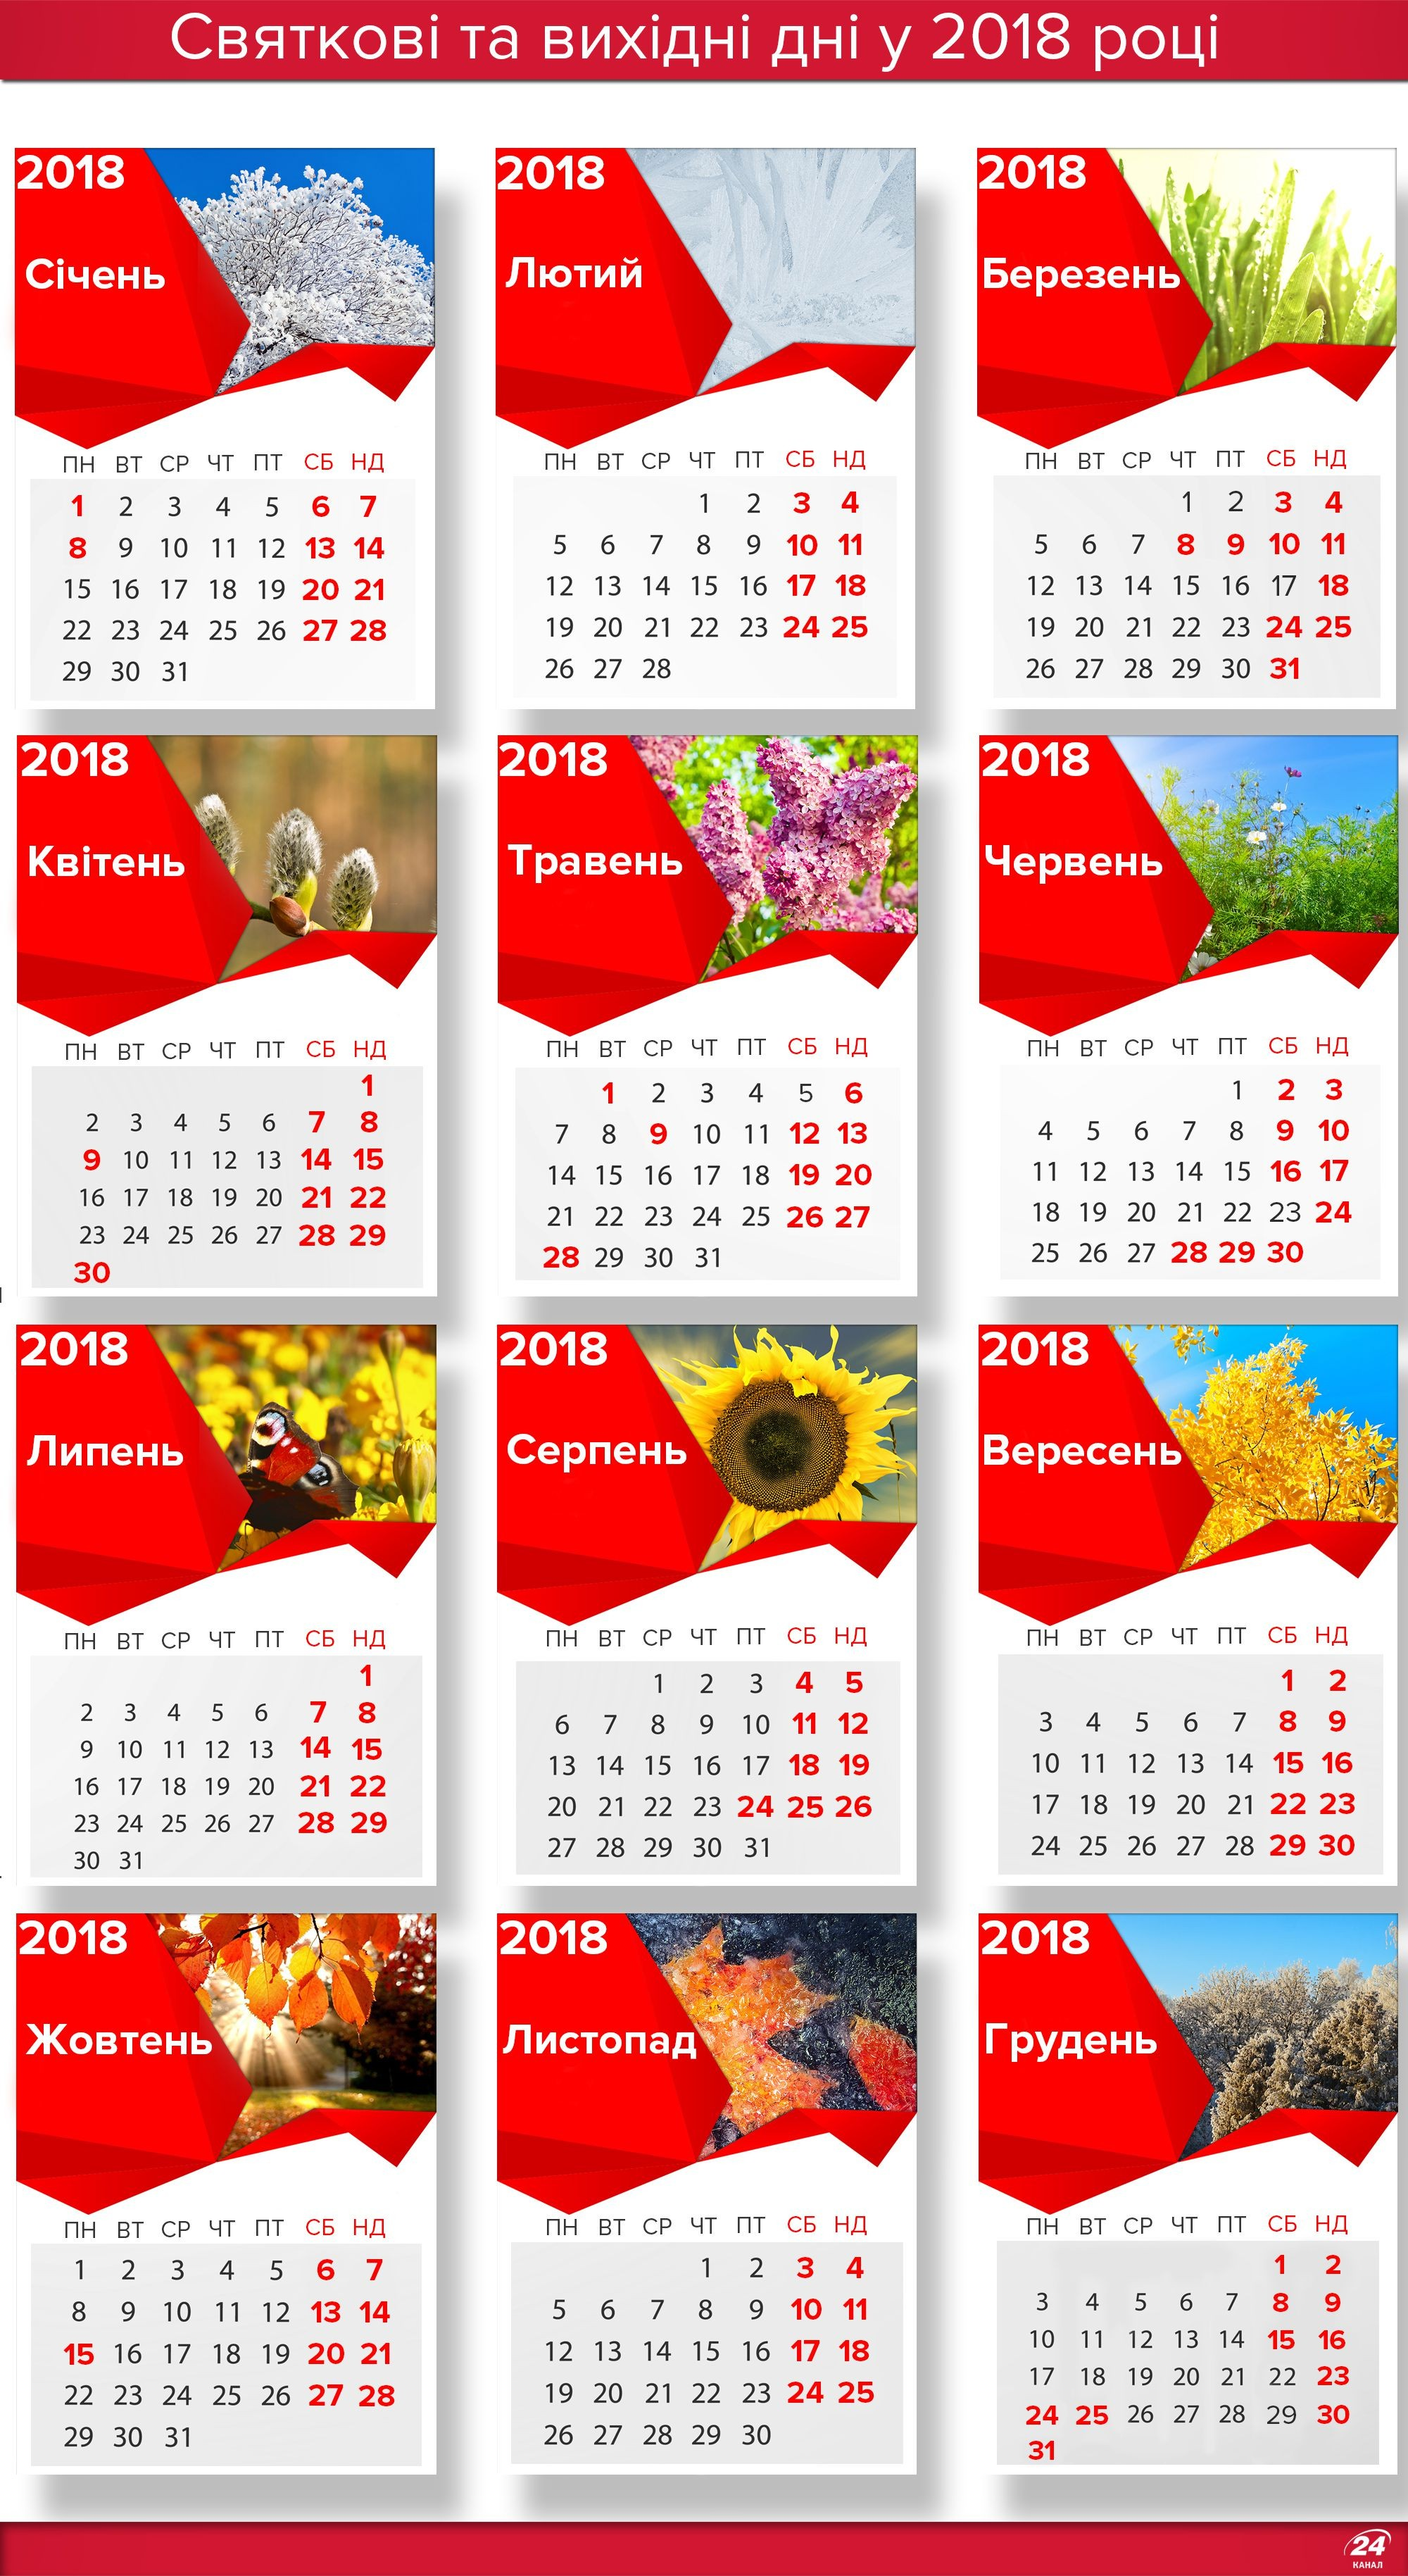 2018 HOLIDAYS IN UKRAINE